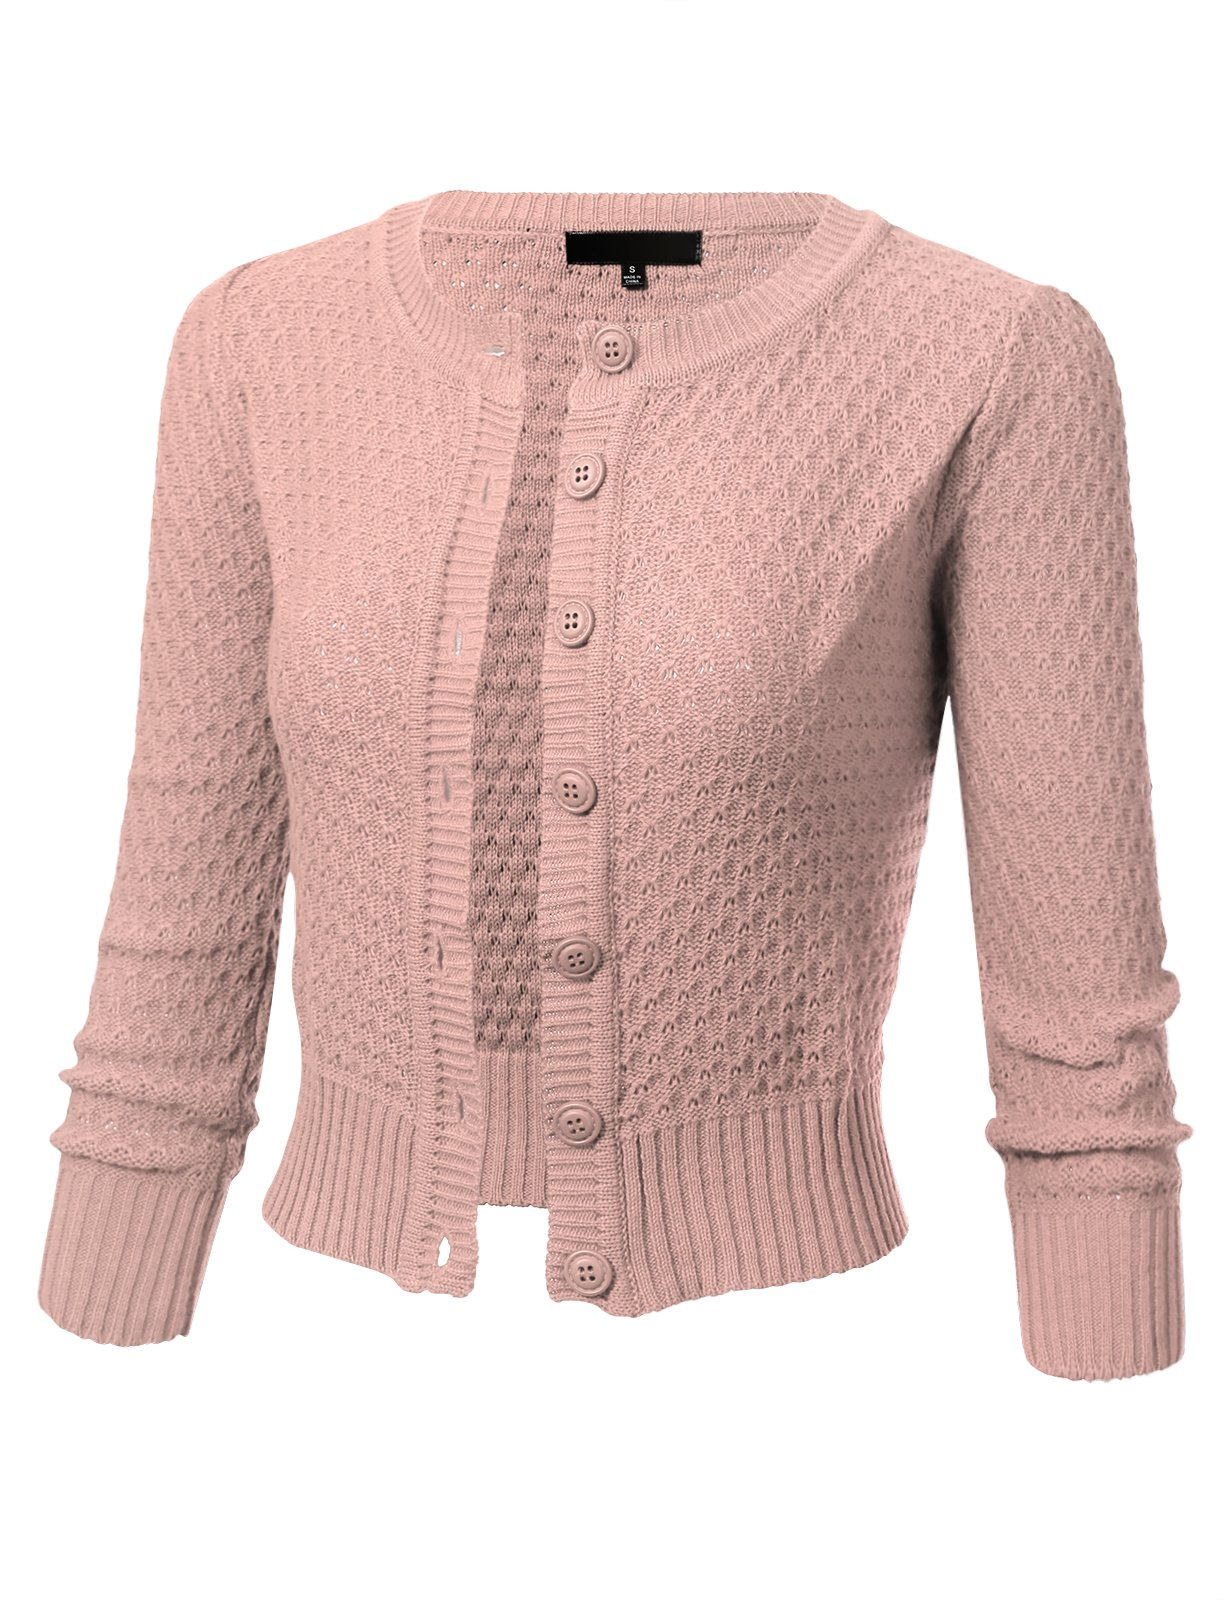 fe6d076402 Womens Button Down 3 4 Sleeve Crewneck Cropped Knit Cardigan Crochet  Sweater S Blush